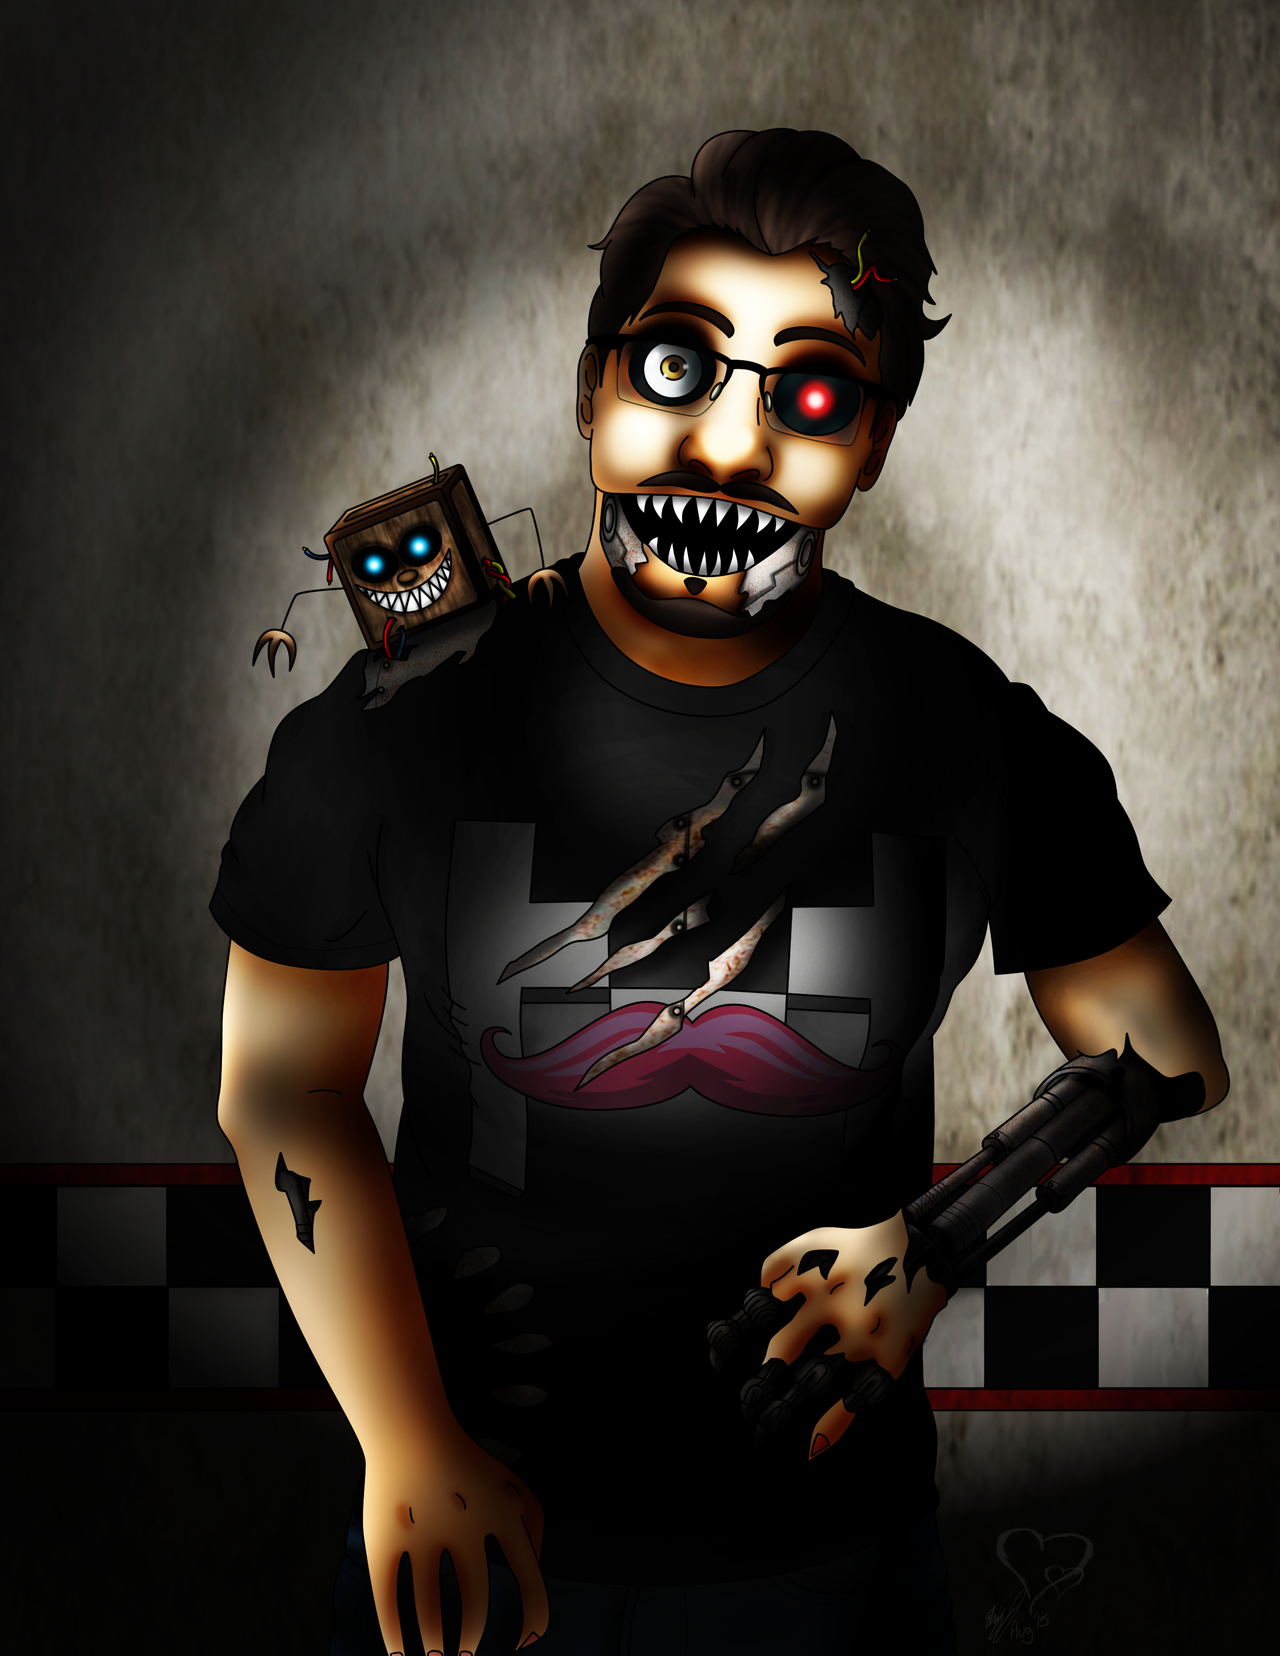 .:FNAF:.Animatronic Markiplier by lizluvsanime2 on DeviantArt Markiplier Fnaf